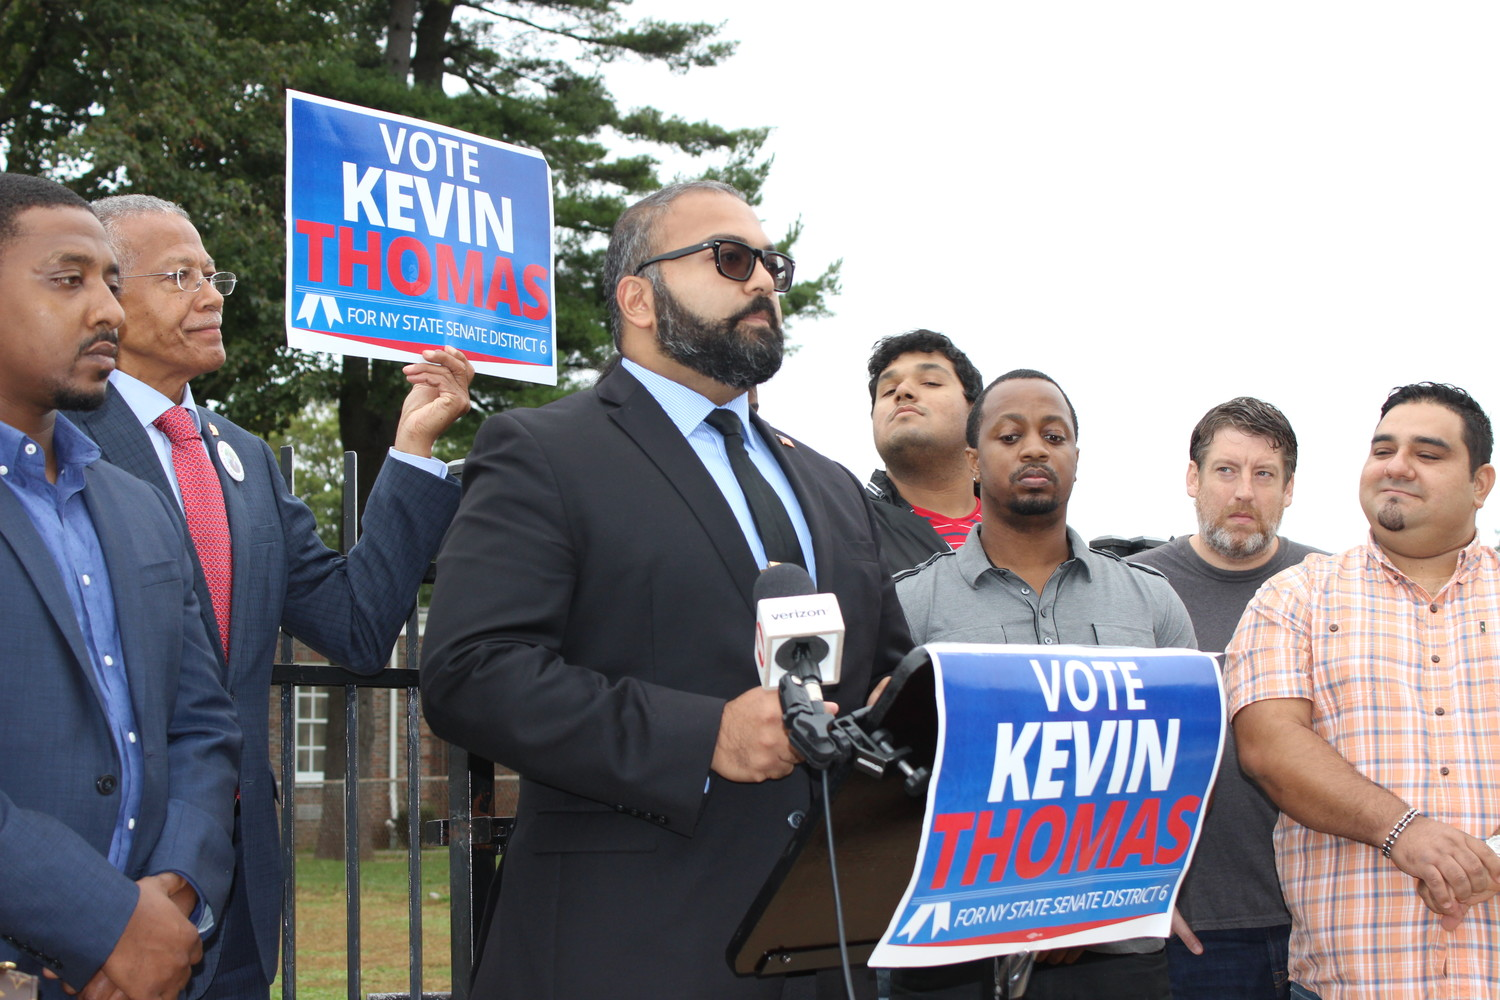 Kevin Thomas, who is running for the state's 6th Senate District, announced on Oct. 8 in front of Barrack Obama Elementary School in Hempstead his goal to bring state aid to underfunded schools on Long Island.